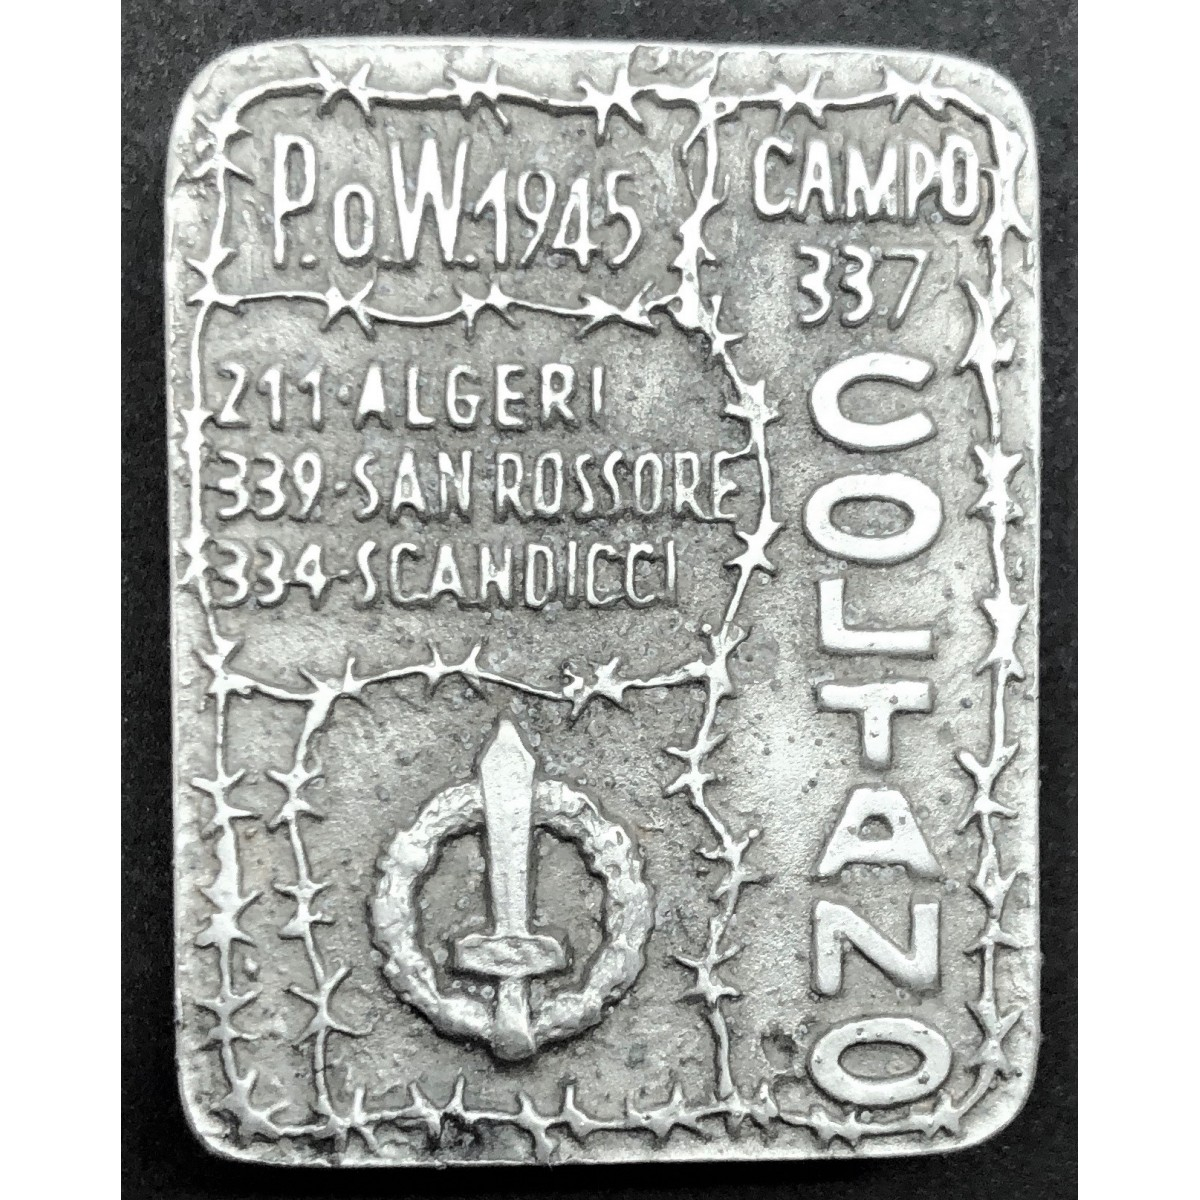 Badge for former RSI prisoners interned in Coltano camp